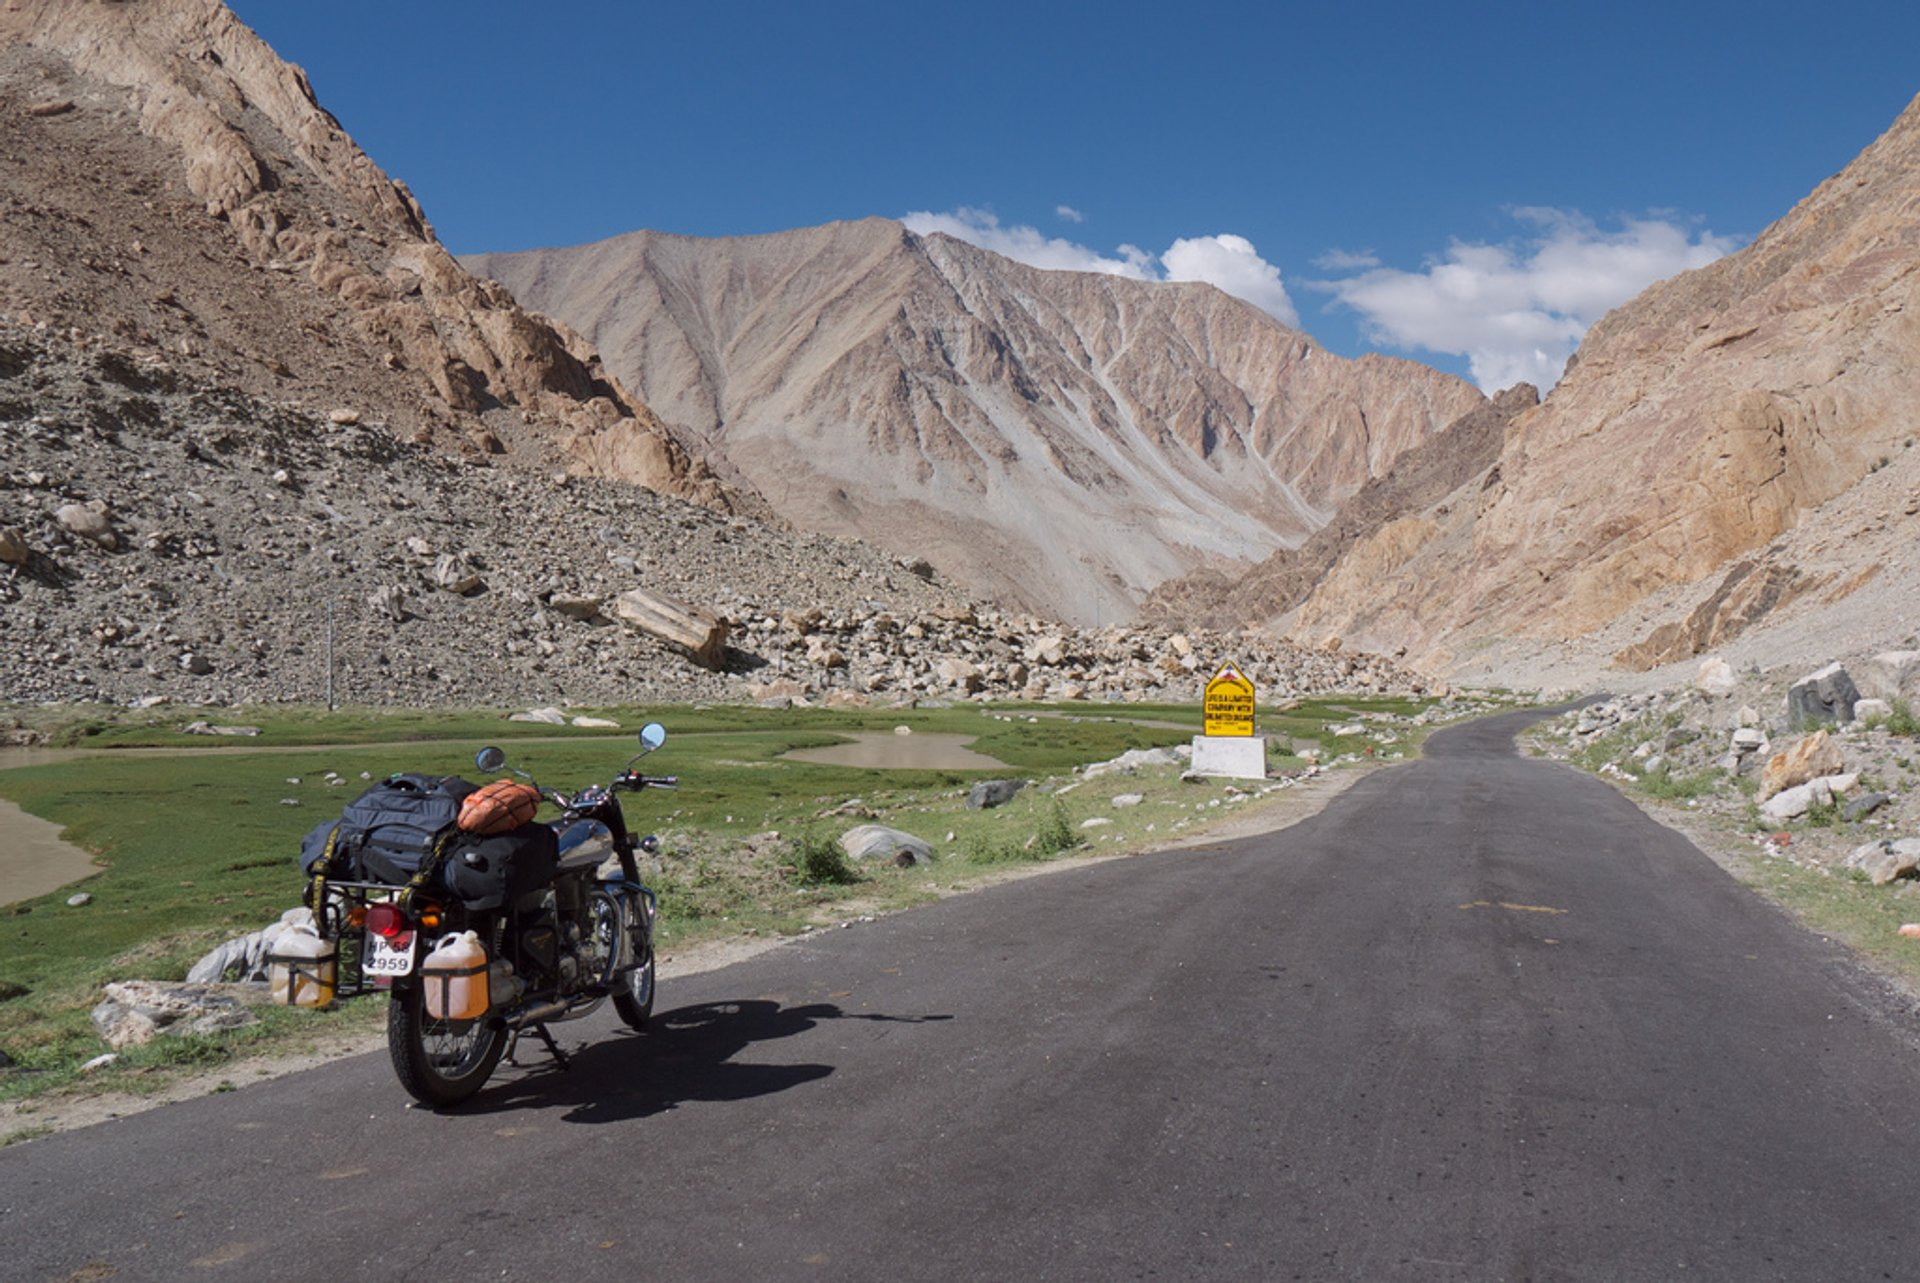 Motorcycle Trips in India 2020 - Best Time